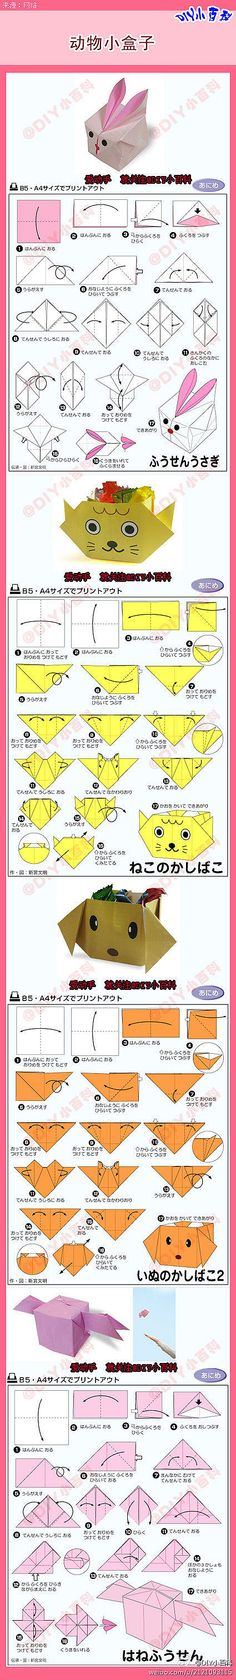 Text all in an Asian language, use images on pin. Origami Toys, Origami Lamp, Origami And Kirigami, Origami Butterfly, Origami Paper, Dinosaur Origami, Fun Crafts, Paper Crafts, Traditional Japanese Art